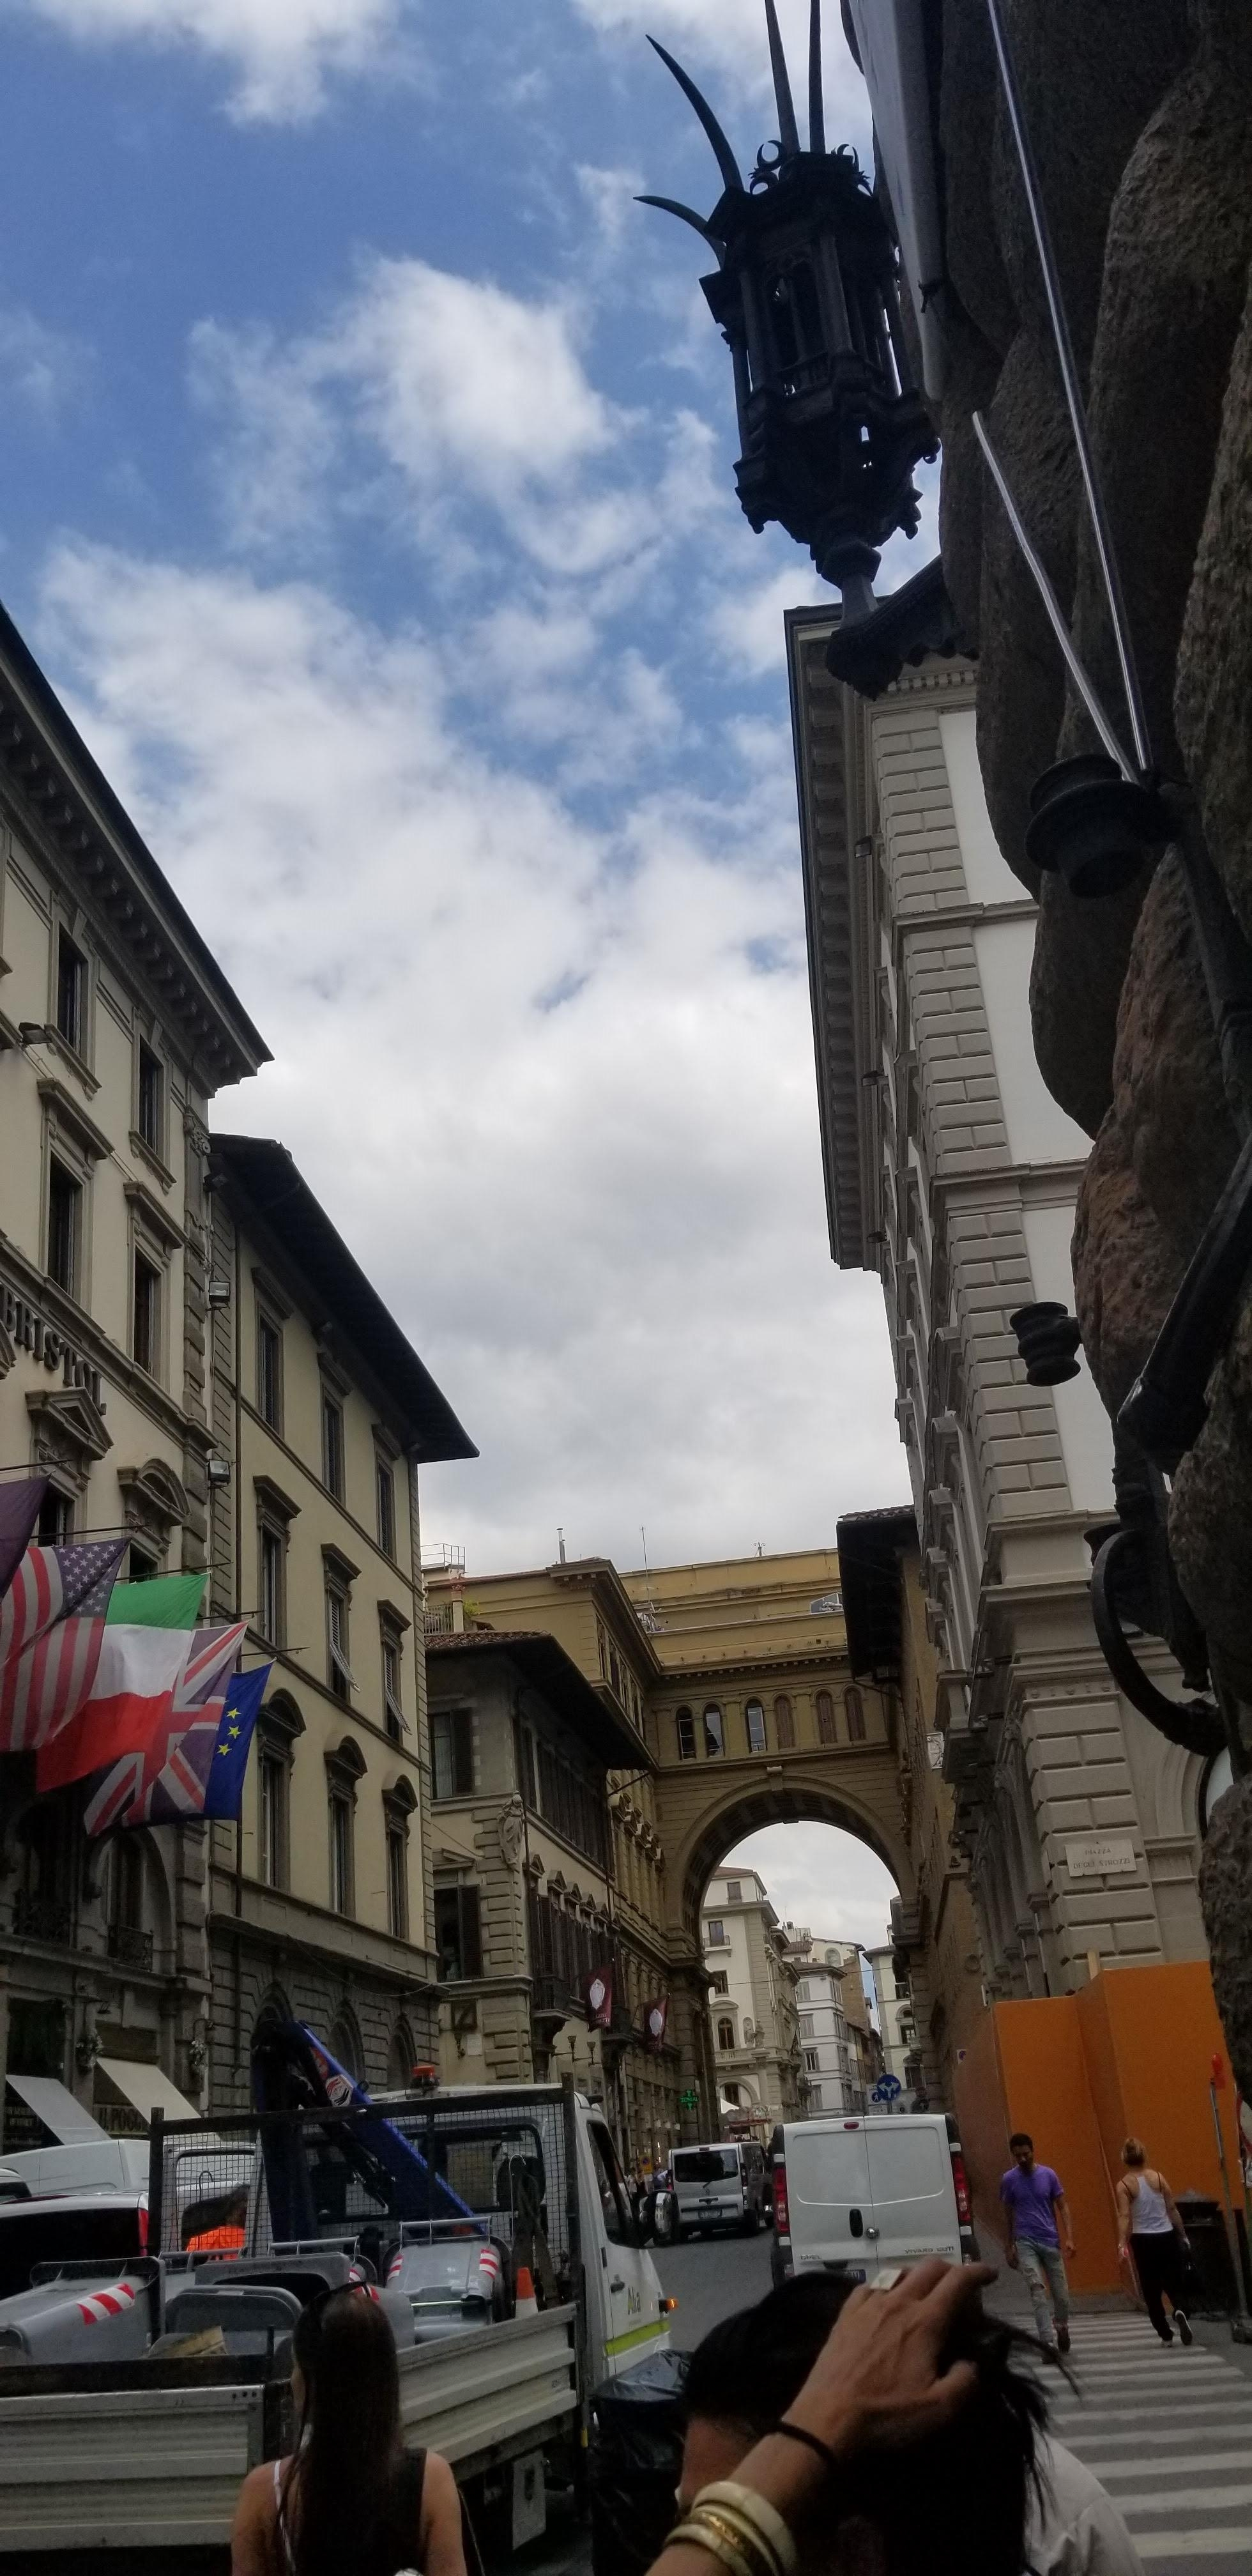 CAPAStudyAbroad_Florence_Summer2018_From Allyson Barnes - My Daily and Awesome View-956236-edited